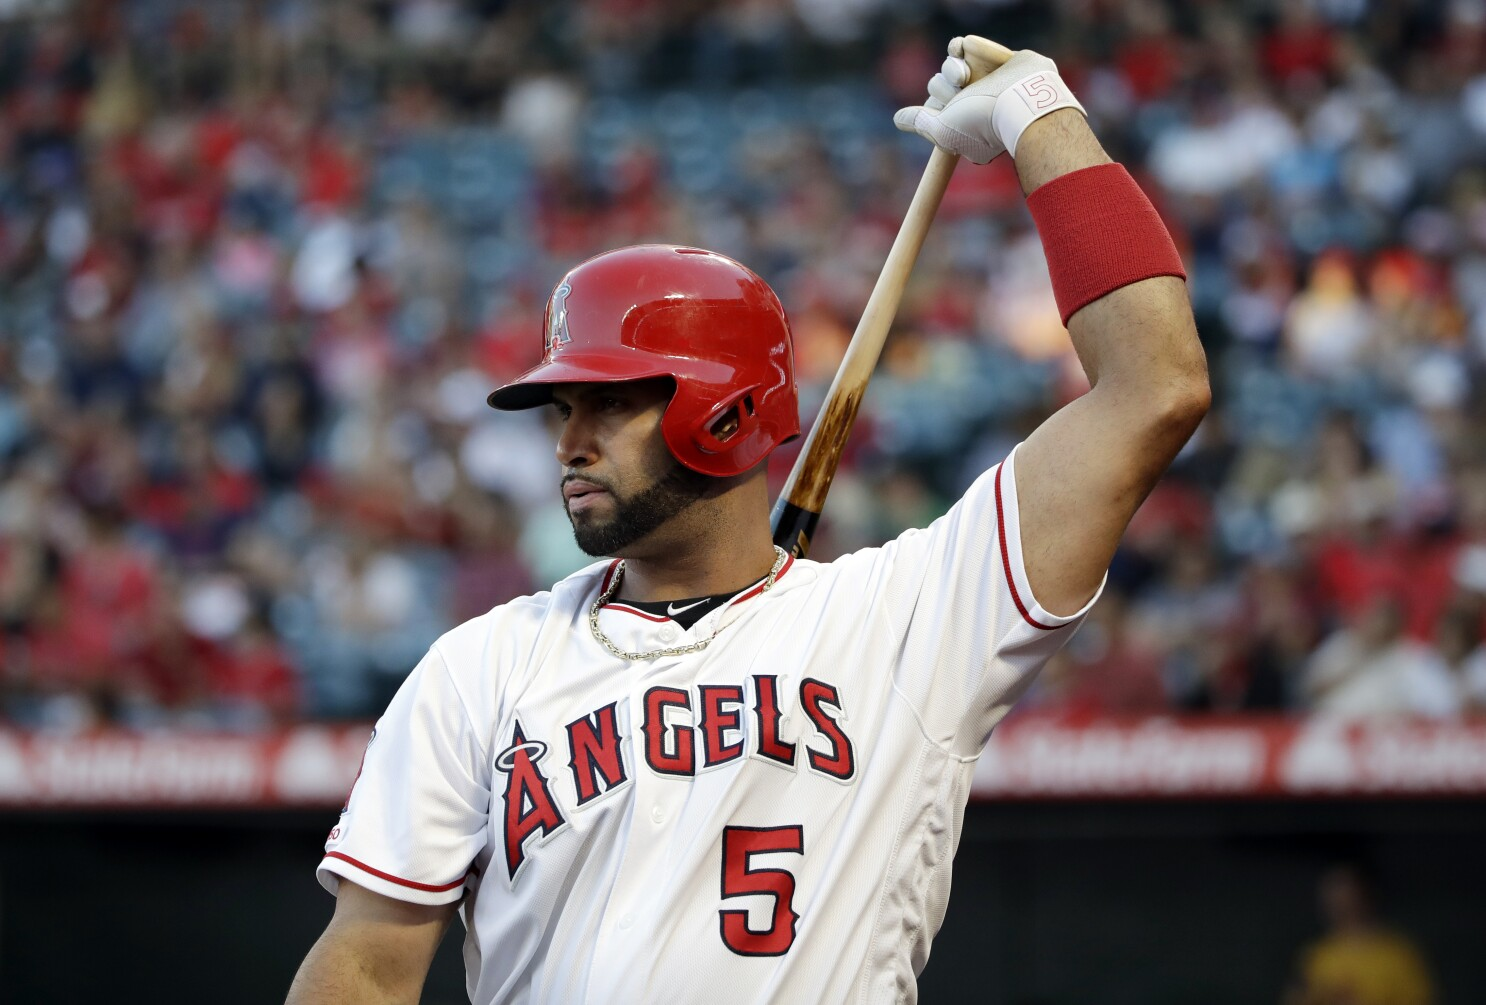 Angels veteran Albert Pujols an asset on the bases despite lacking speed - Los Angeles Times